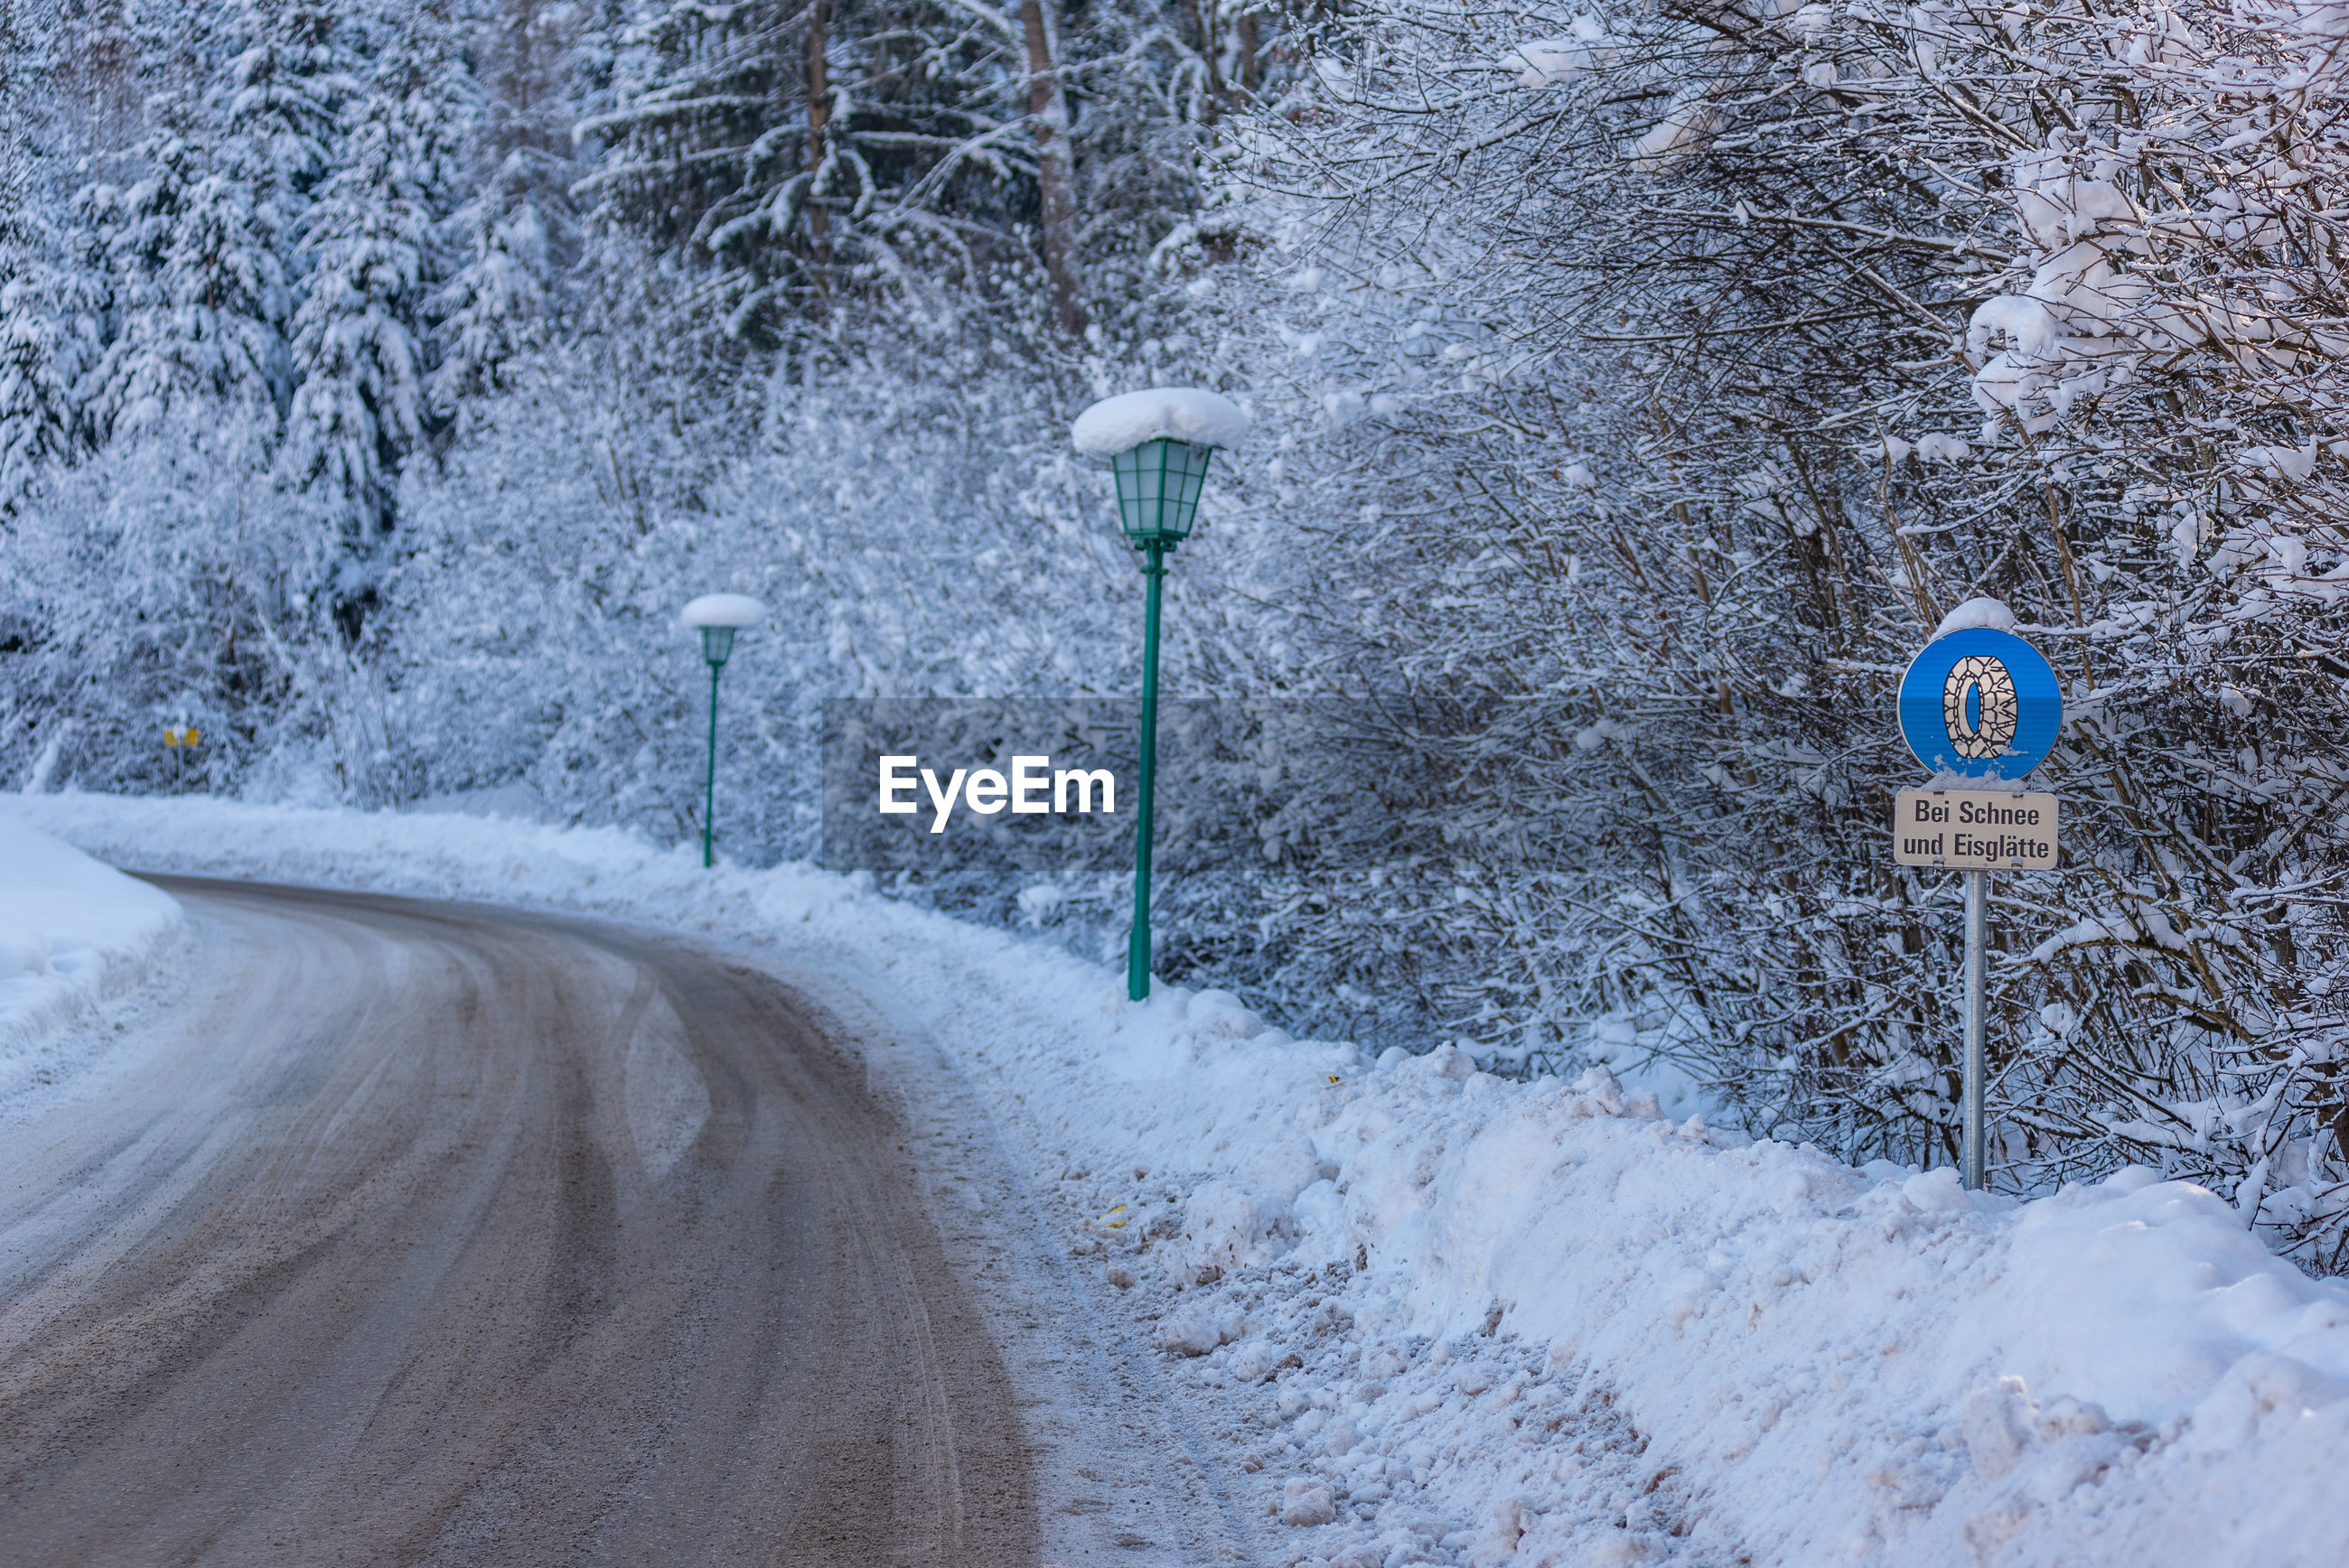 Snow covered road, green street lamps and trees. warning traffic sign. chains recorded.